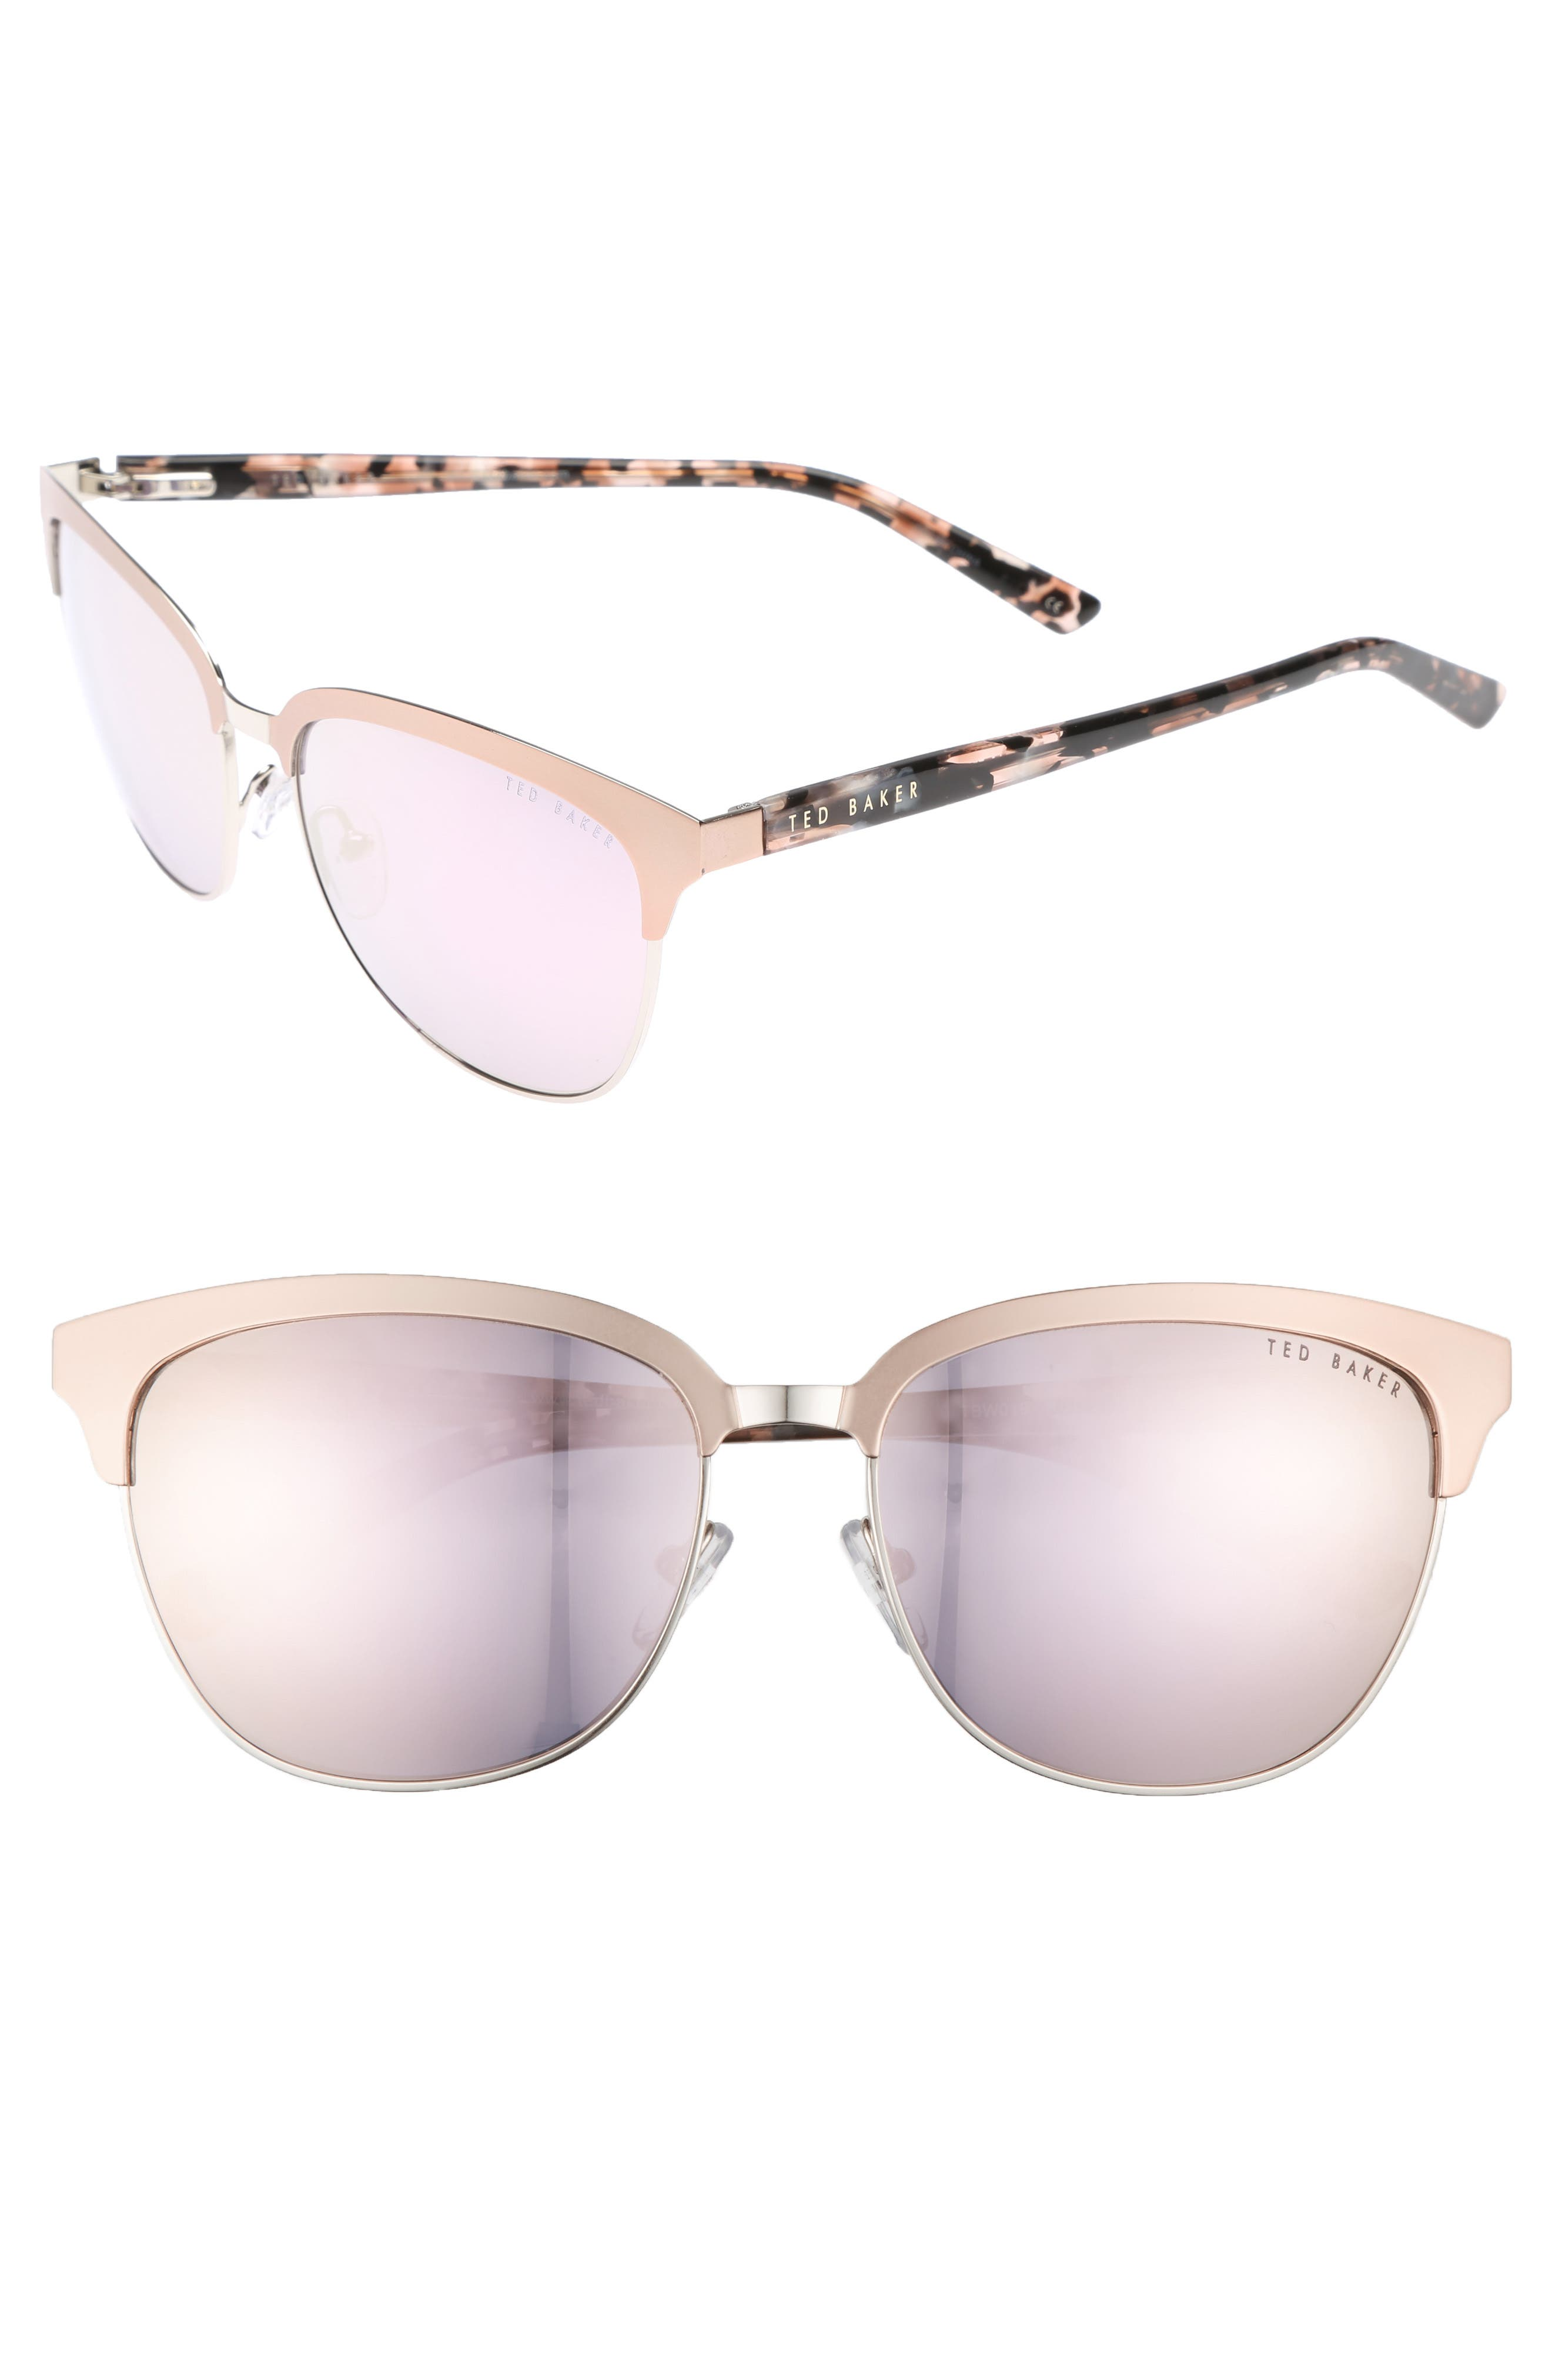 57mm Mirrored Sunglasses,                             Main thumbnail 1, color,                             ROSE GOLD